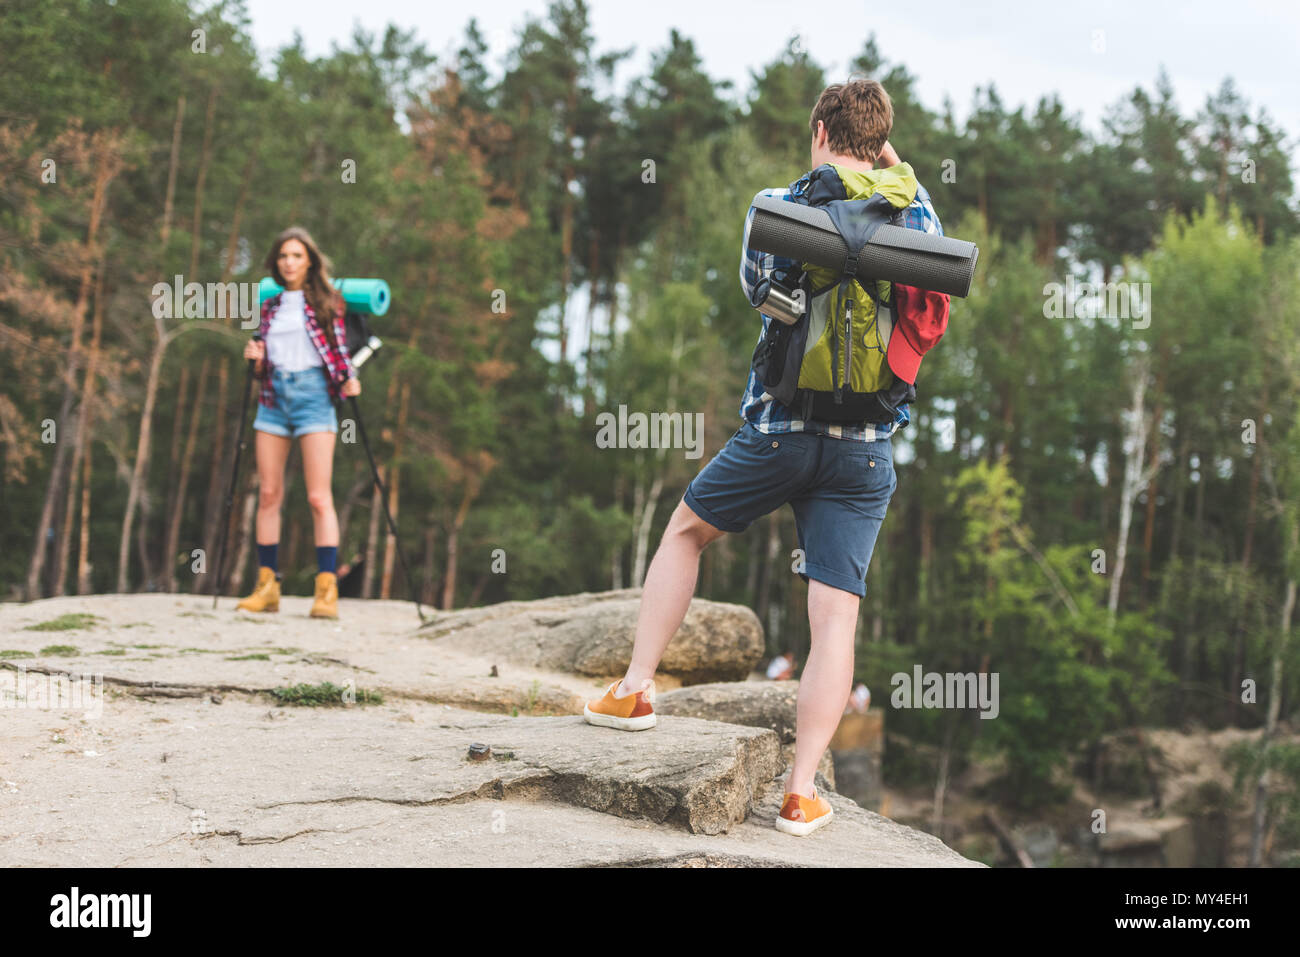 man taking photo of girlfriend with hiking equipment in forest - Stock Image